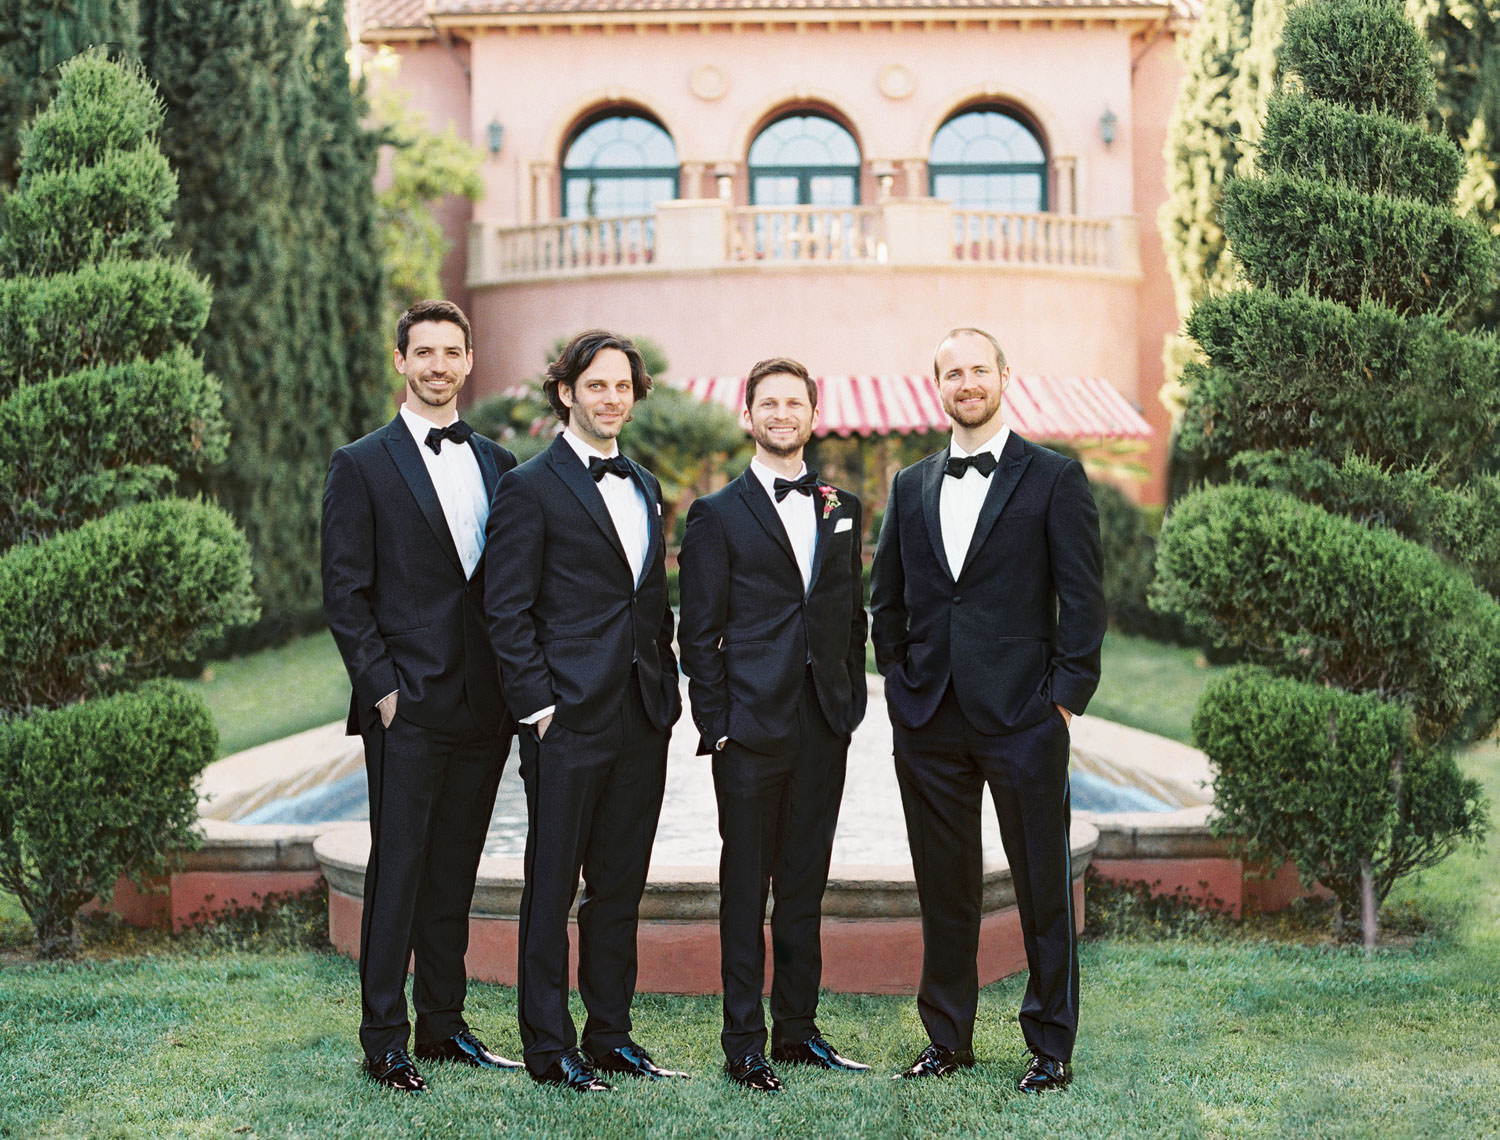 Groom and groomsmen in black tuxedos on the Aria Lawn for bridal party portraits. Fairmont Grand del Mar wedding published on Martha Stewart Weddings